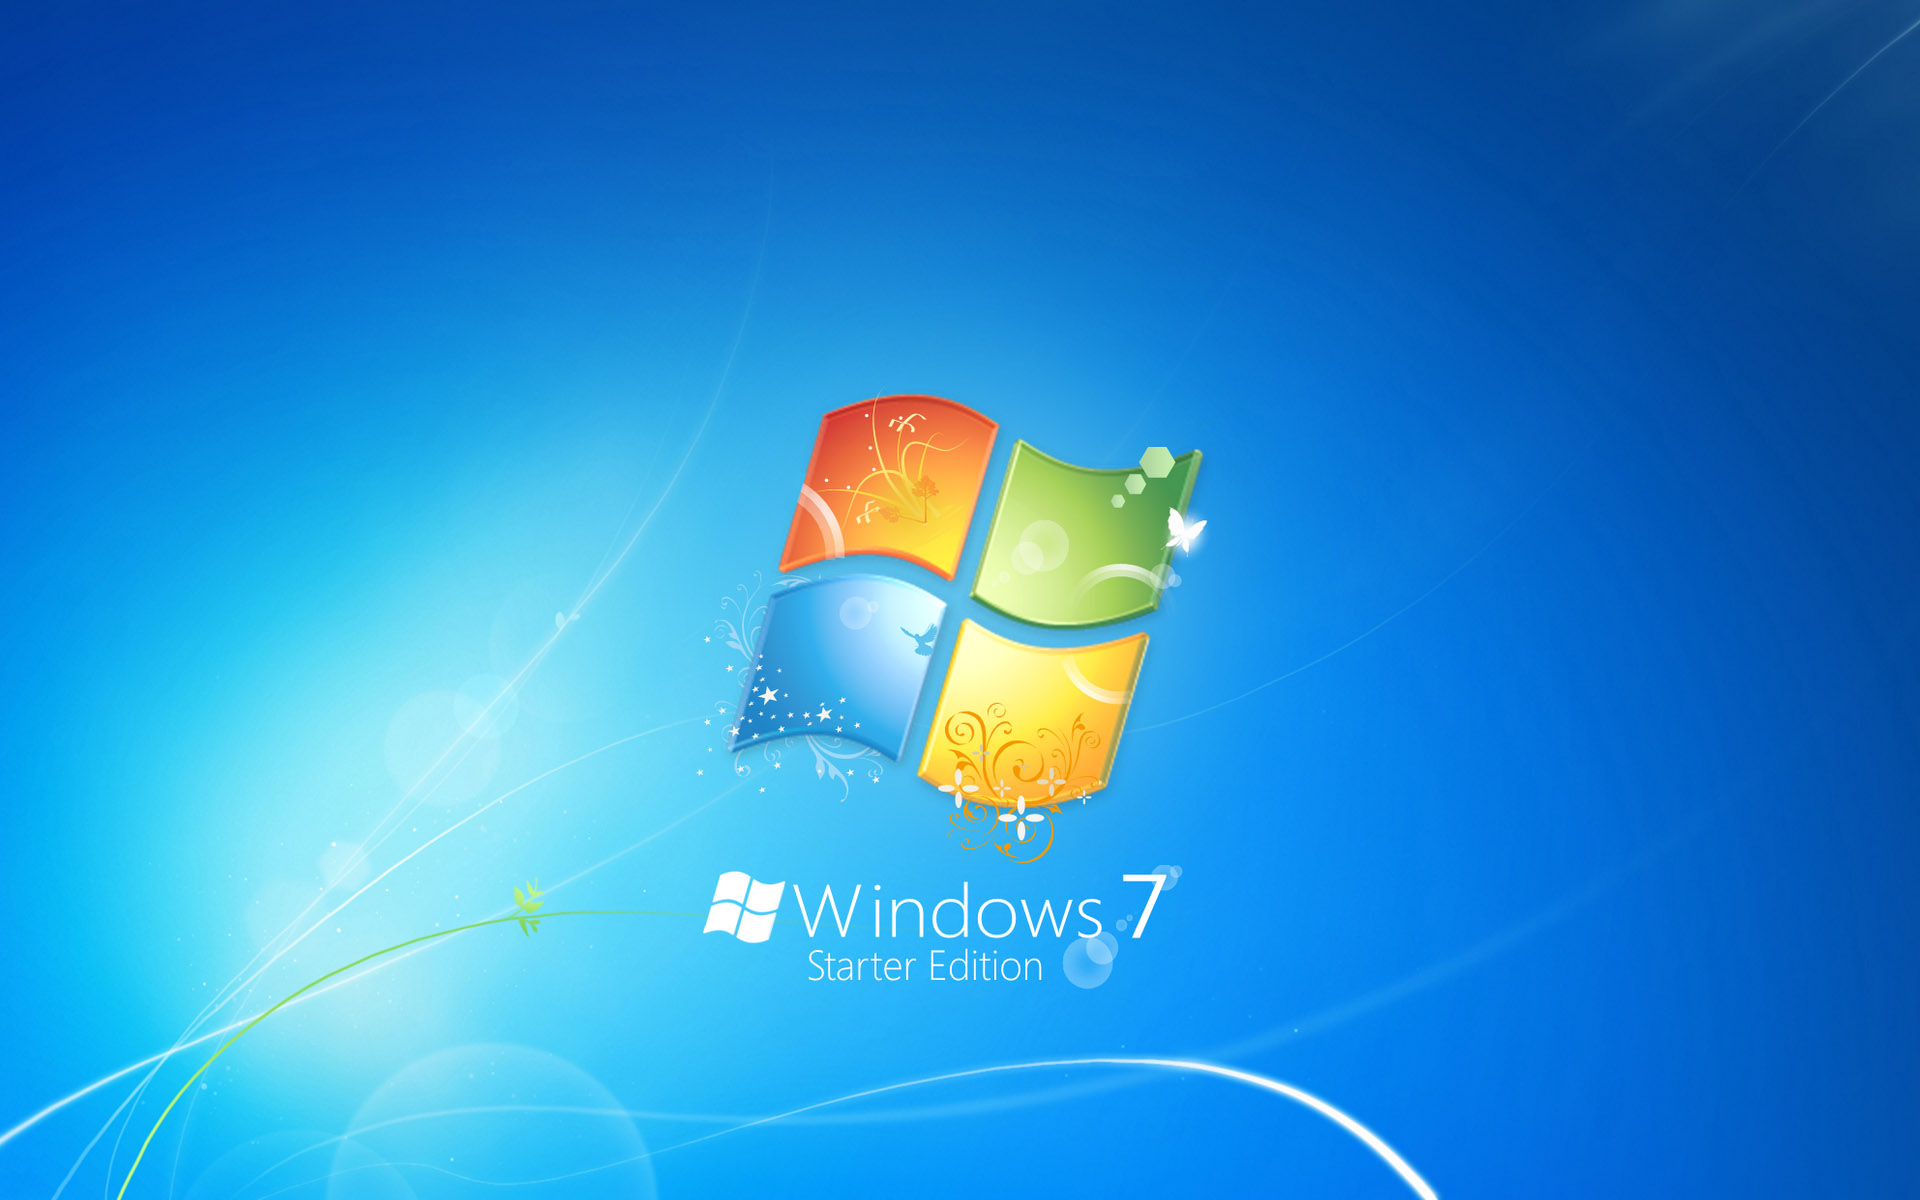 Windows Desktop Wallpaper 10650